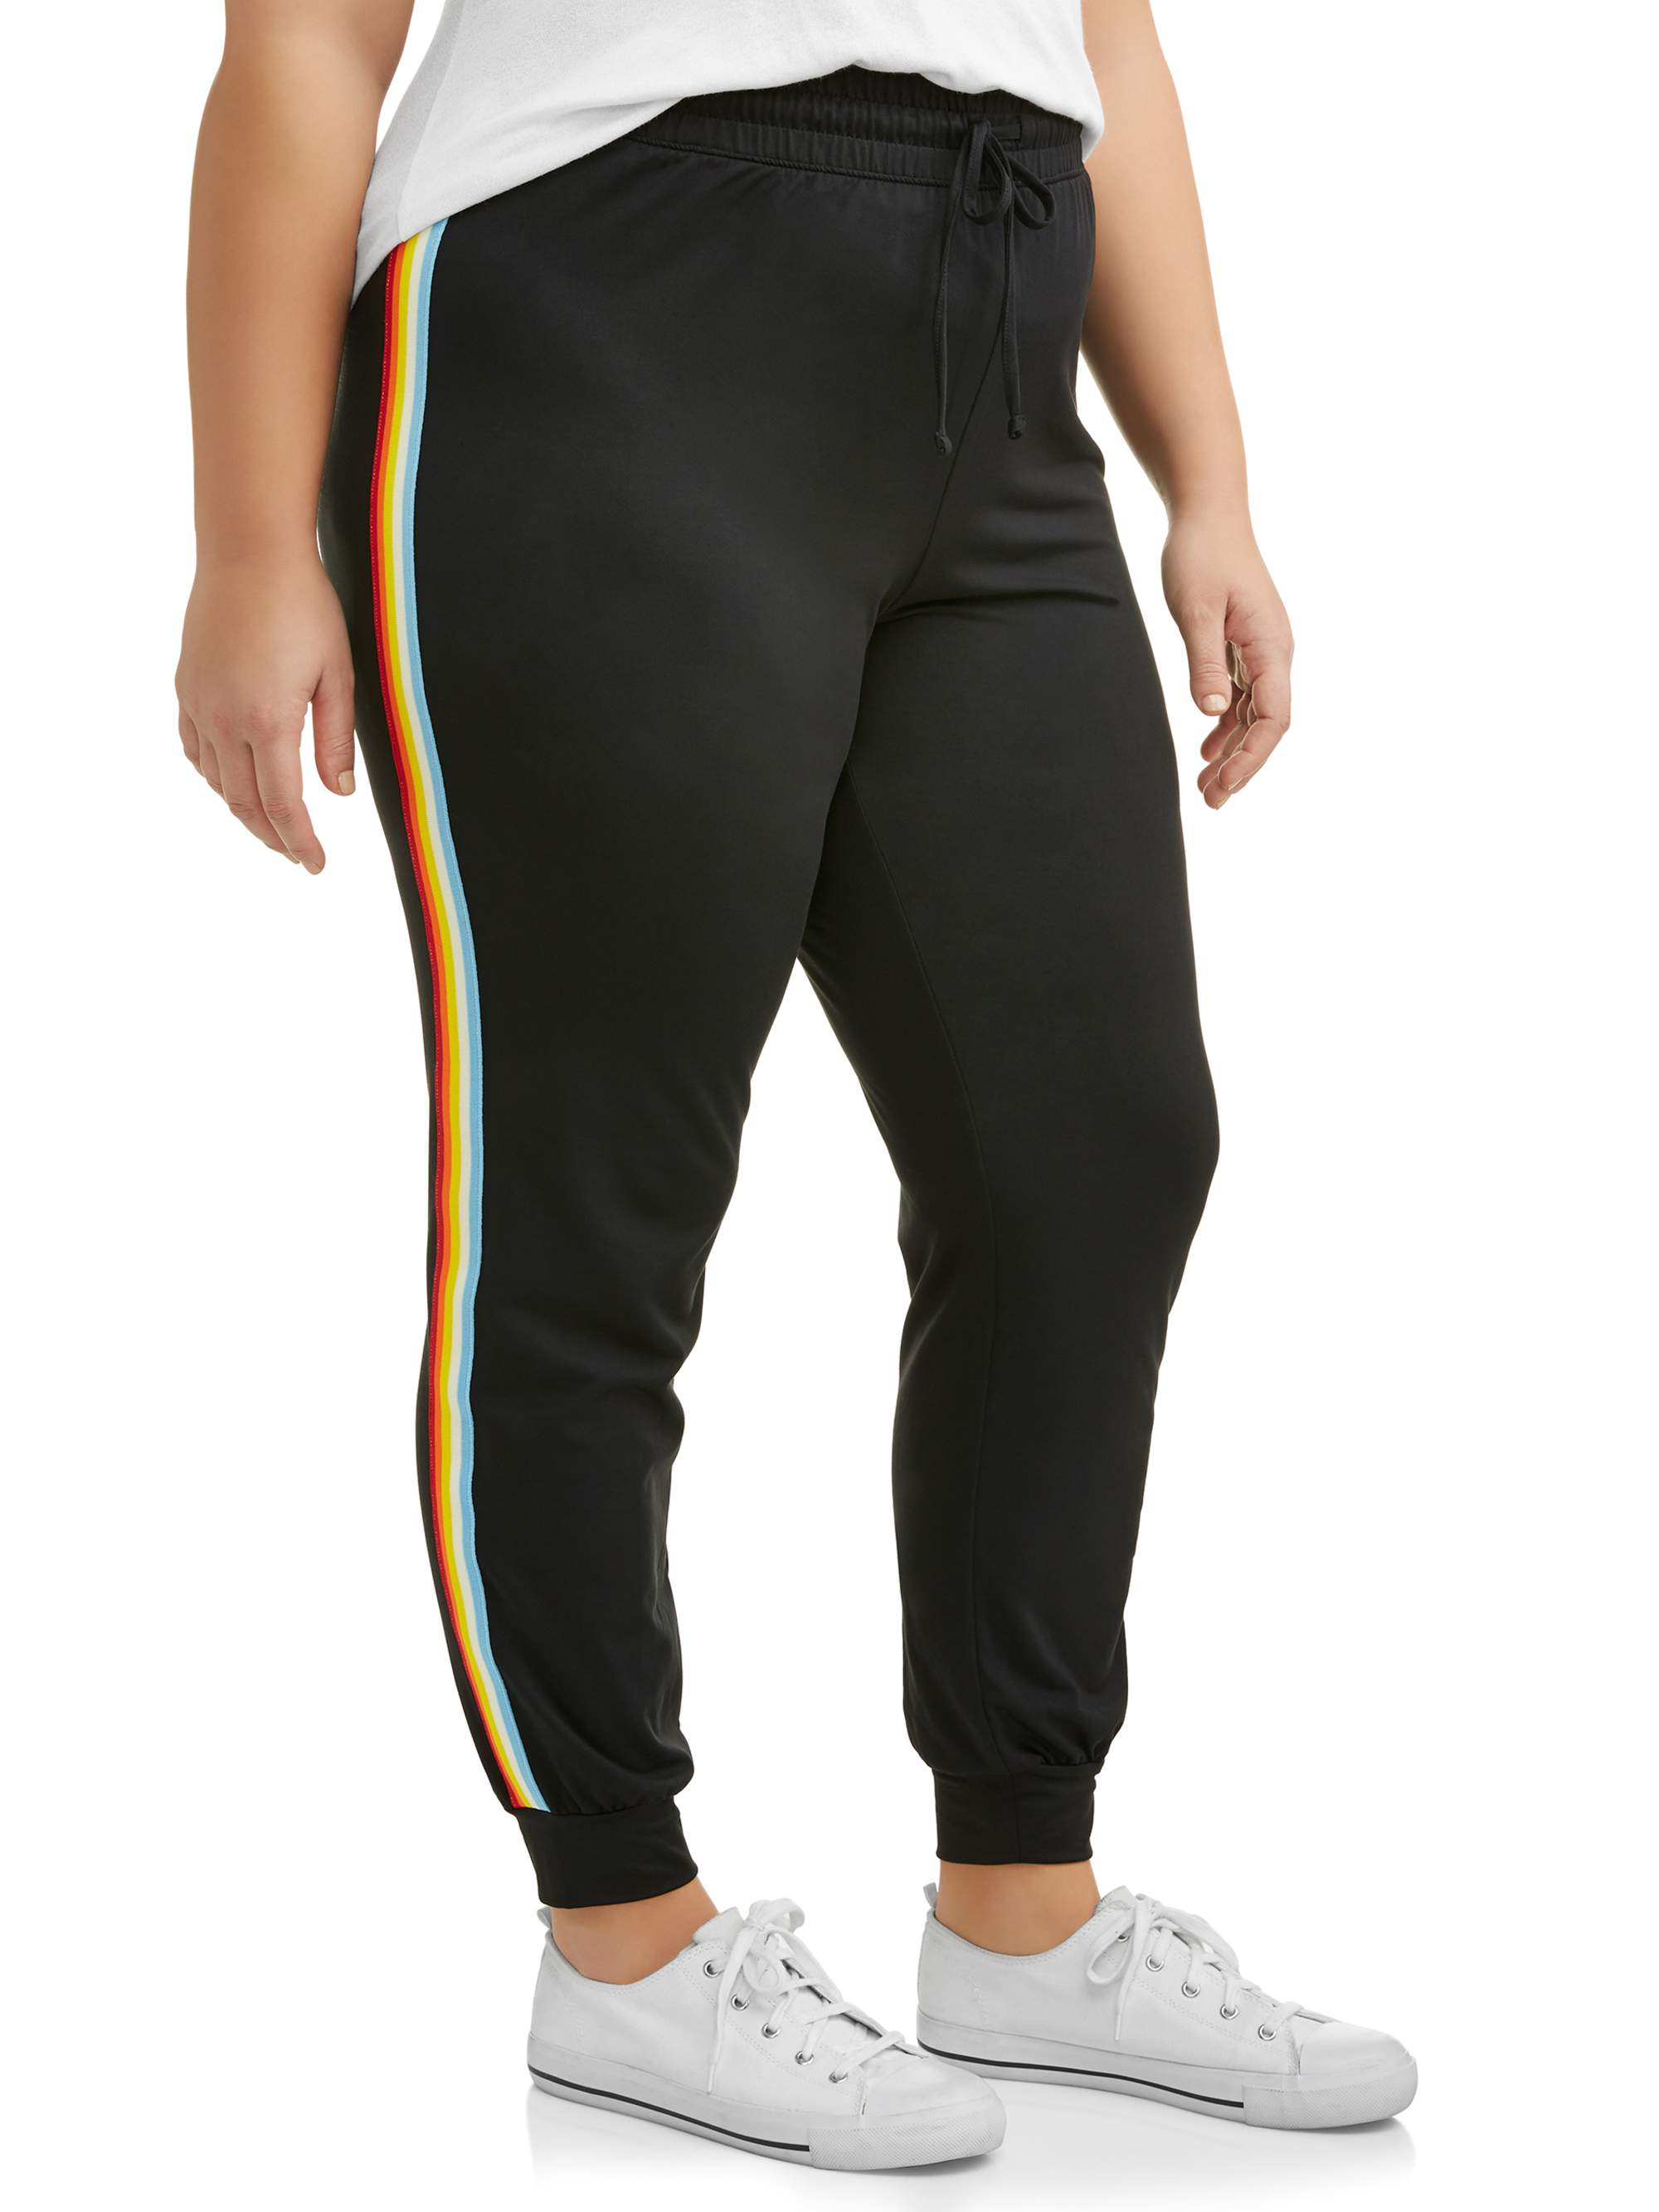 66f40c052a7 Eye Candy - Juniors  Plus Size Super Soft Brushed Joggers with Varsity  Stripe - Walmart.com